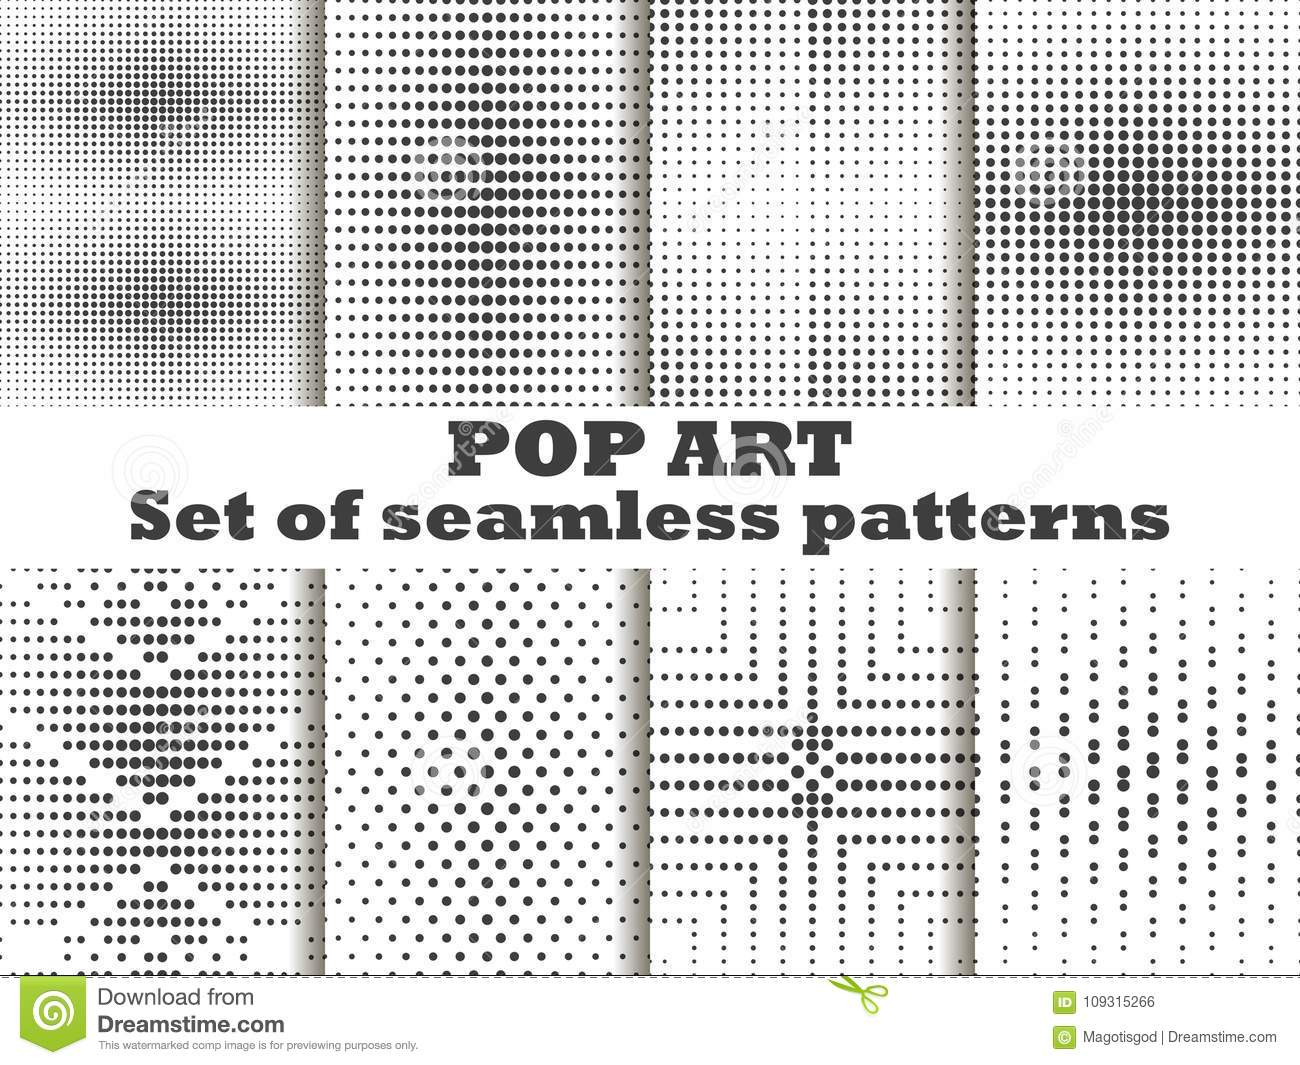 Dotted, Pop Art seamless pattern set. Halftone dots background. Black and white color. Vector